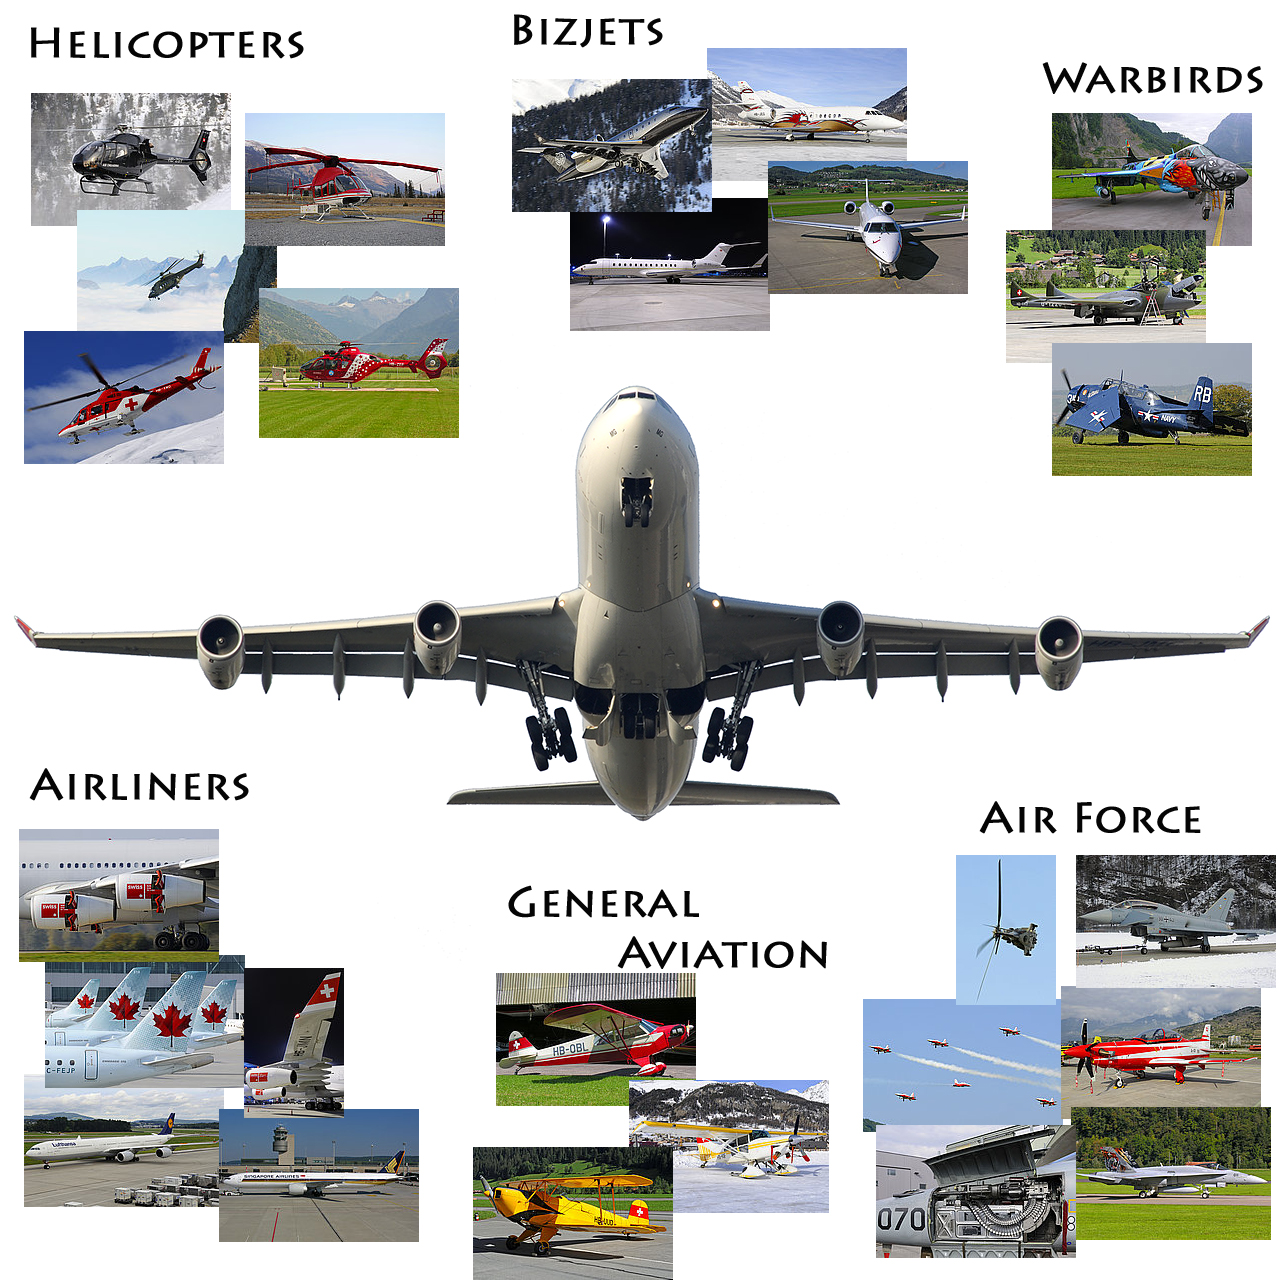 Index Pager -- Helicopters, Bizjets, Warbirds, Airliners, General Aviation, Air Force